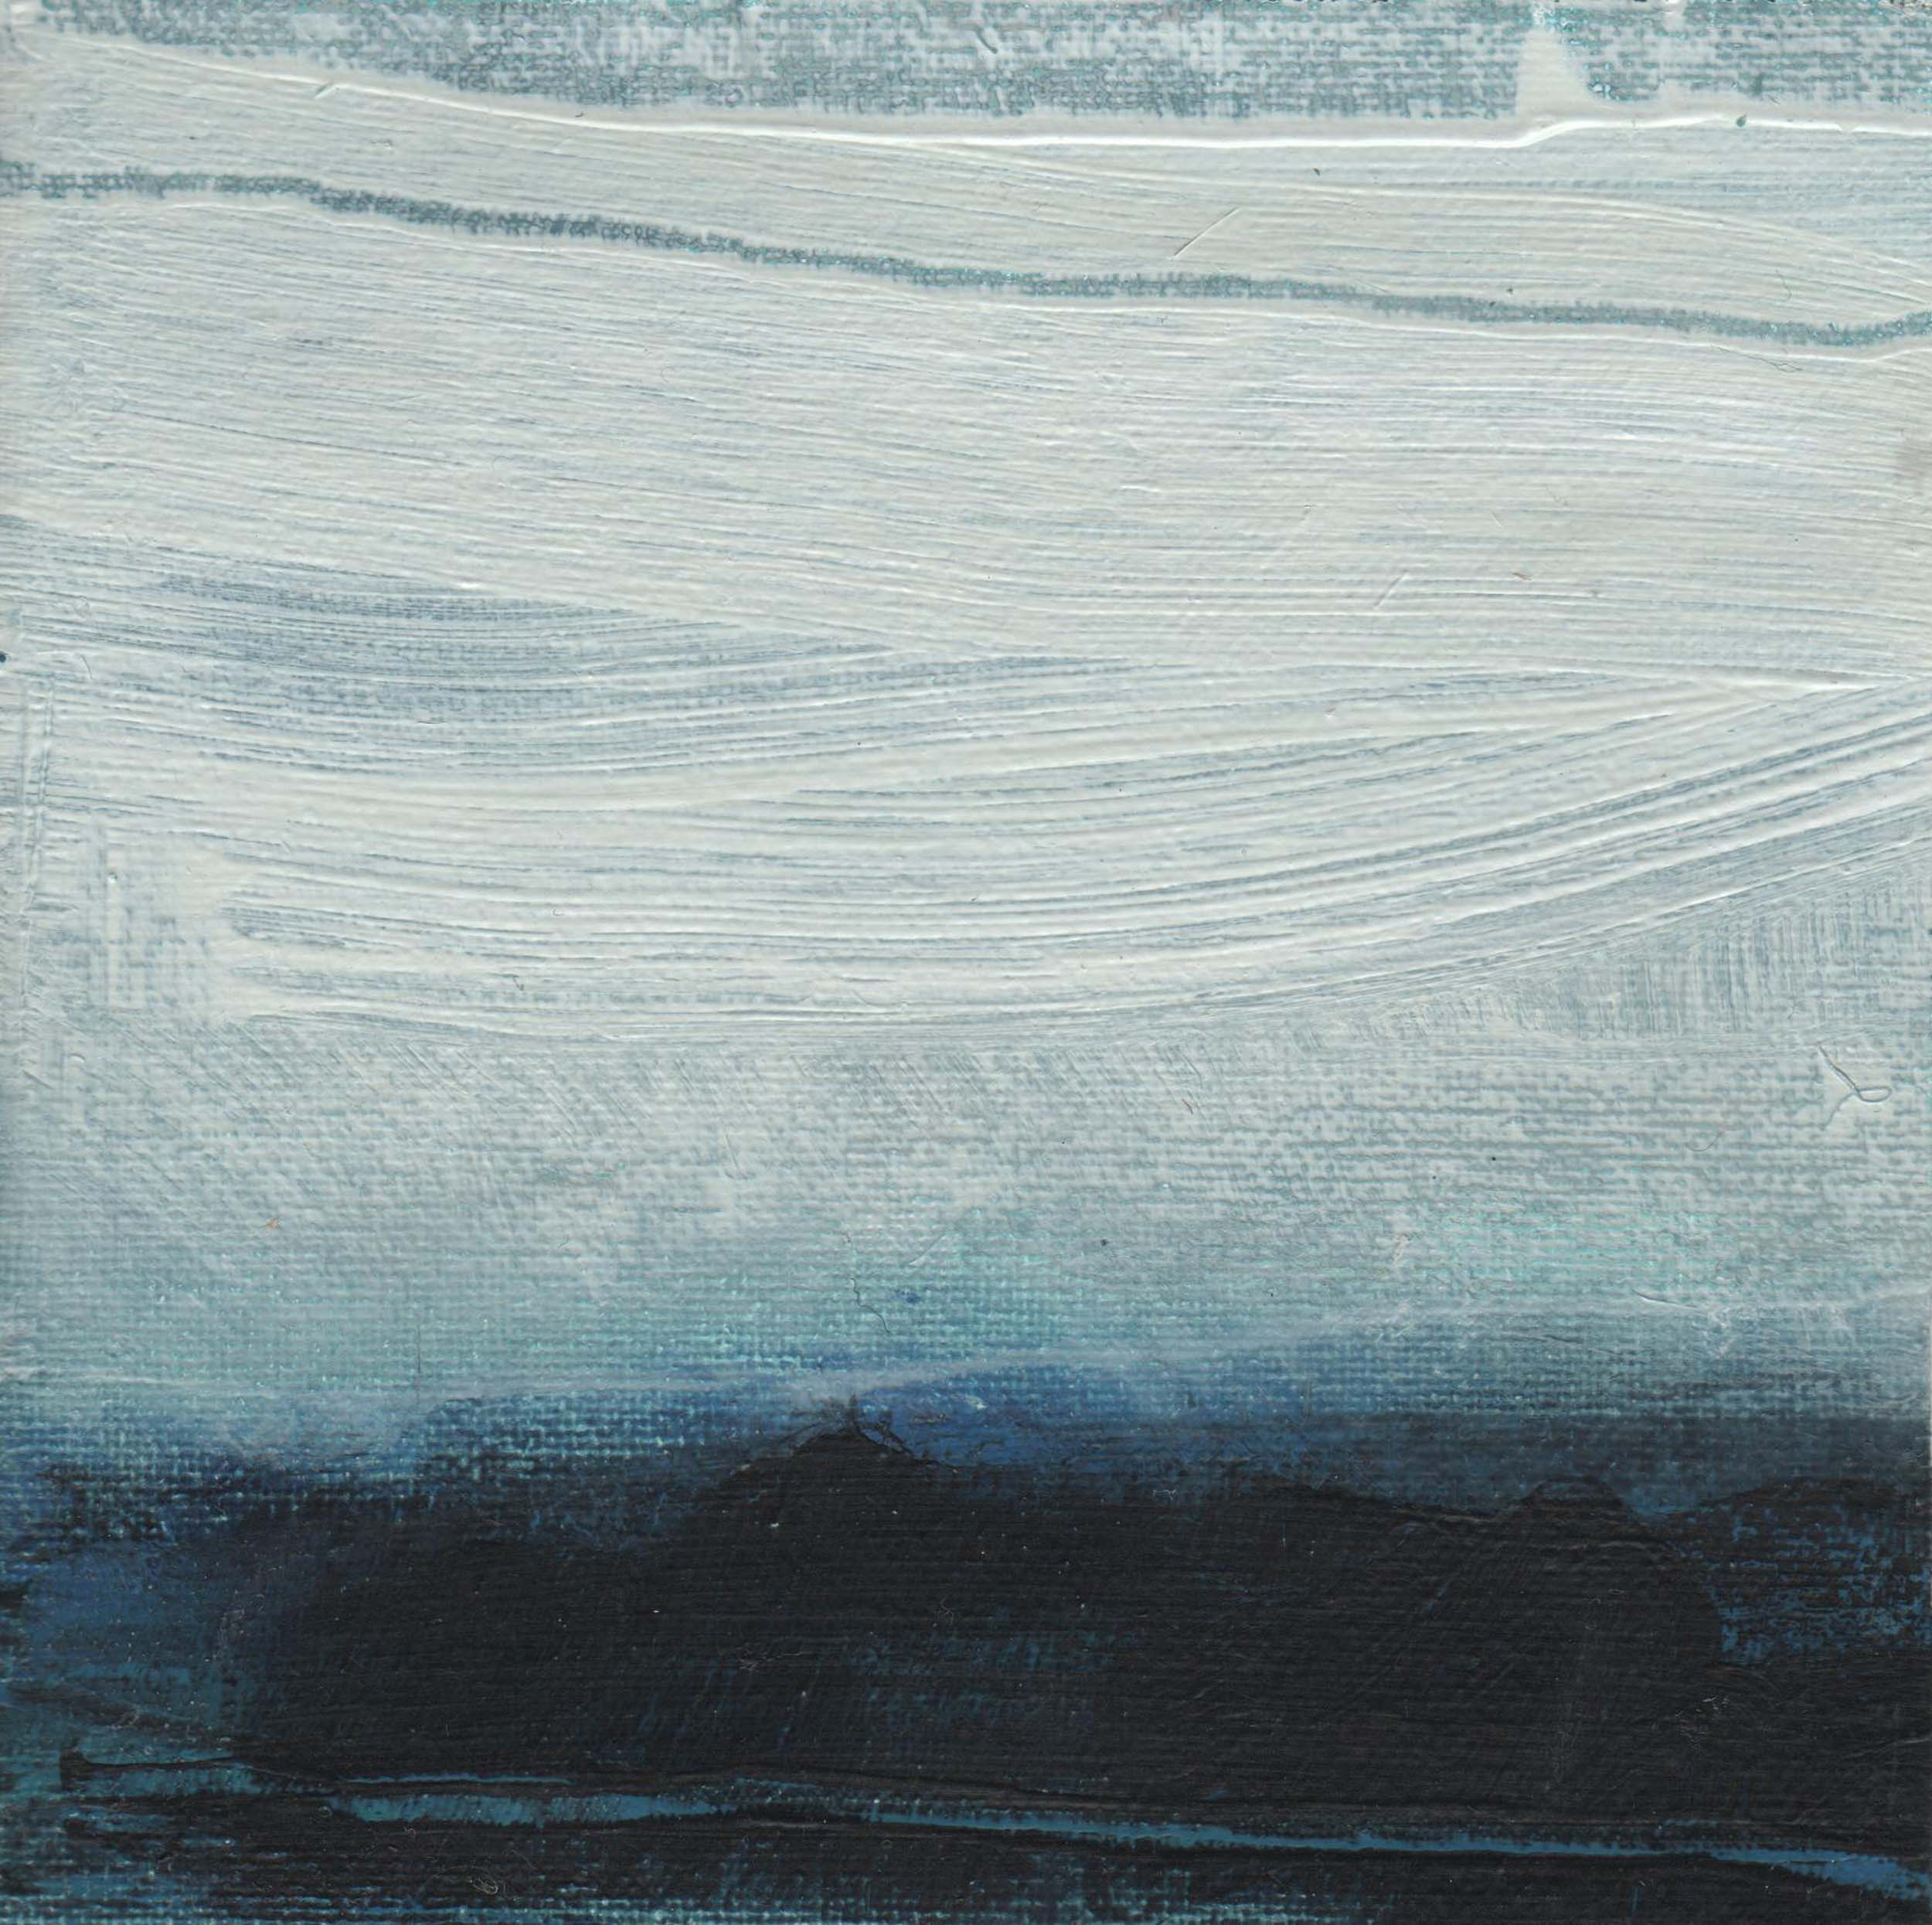 Leah Beggs 2008-Frozen Sky at Letterfrack-Oil on Unstretched Canvas-15 x 15 cm_sml.jpg